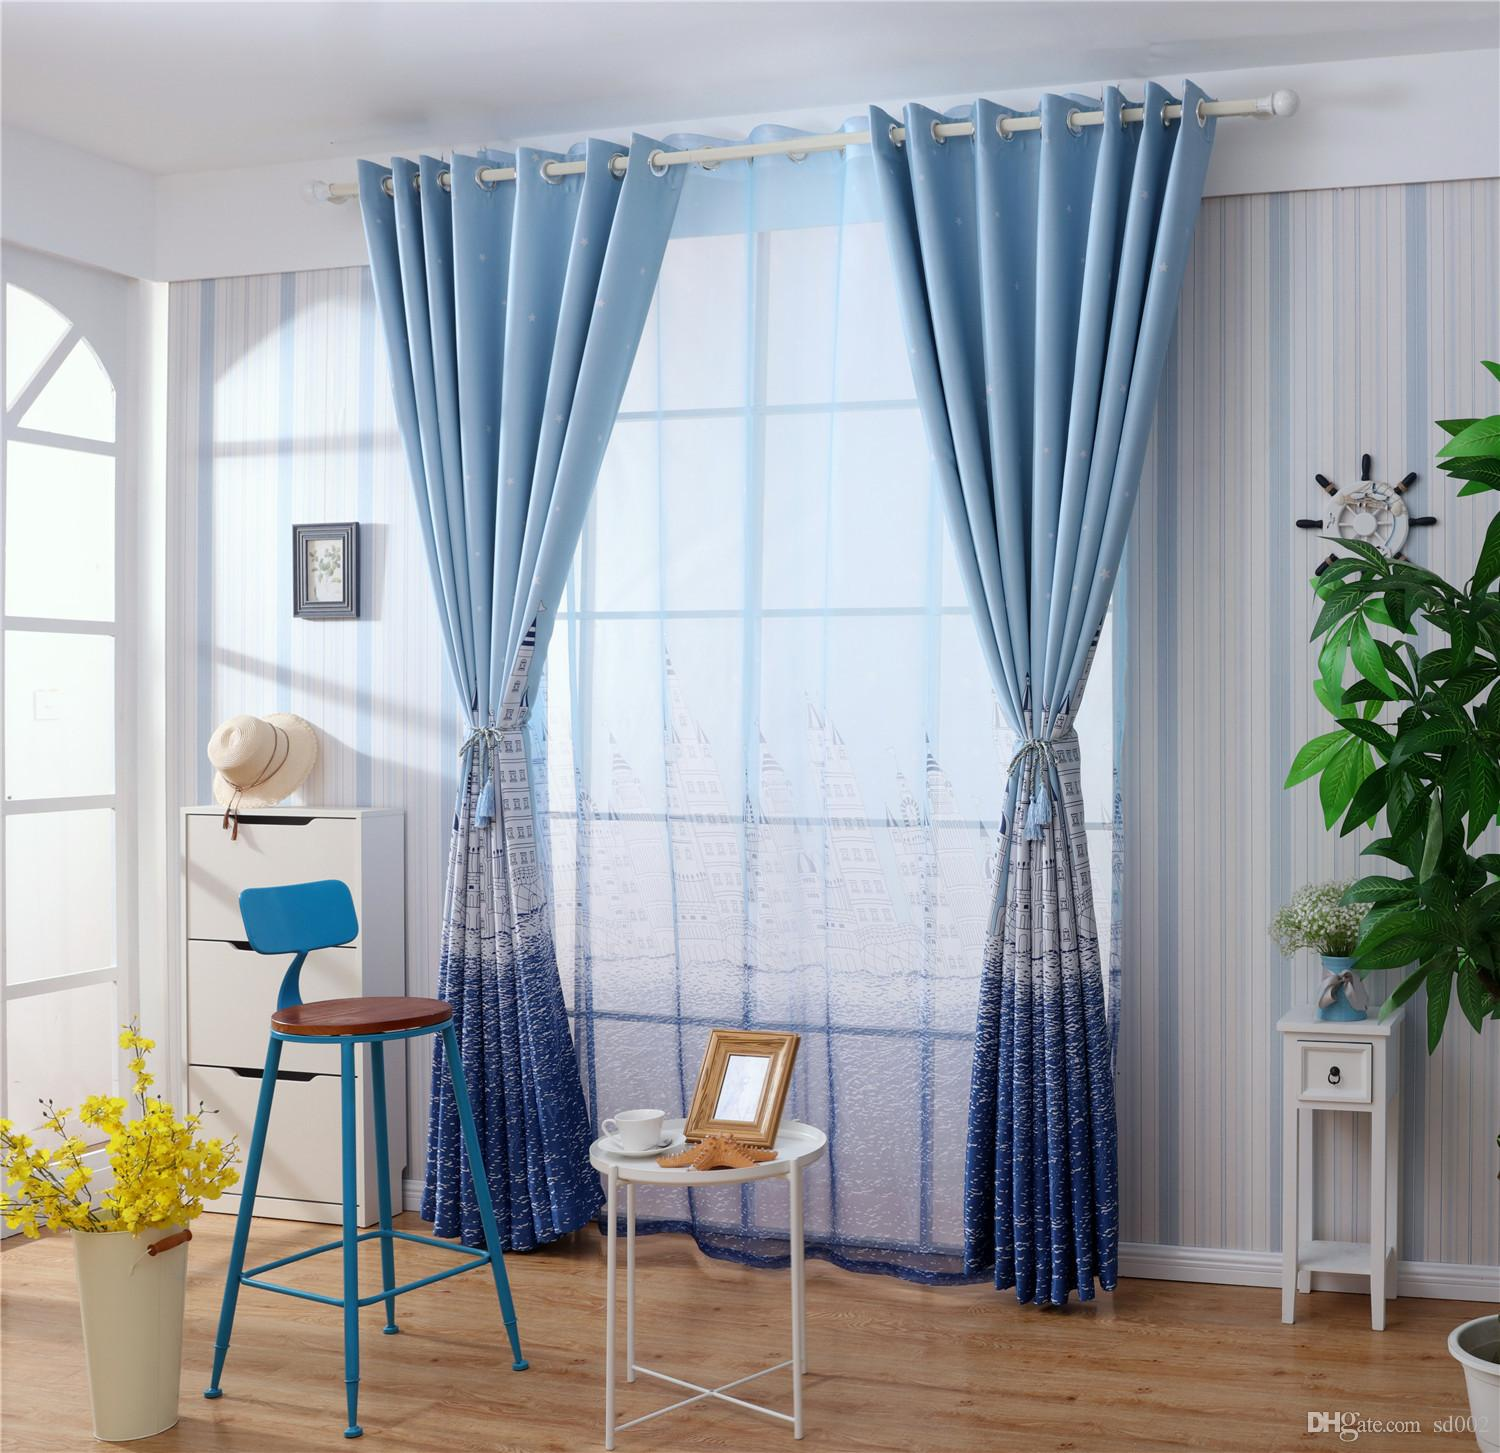 fitted designs up very almost if most with curtain possible you ideas is find to have it come living the any room how casual and a spacious area for